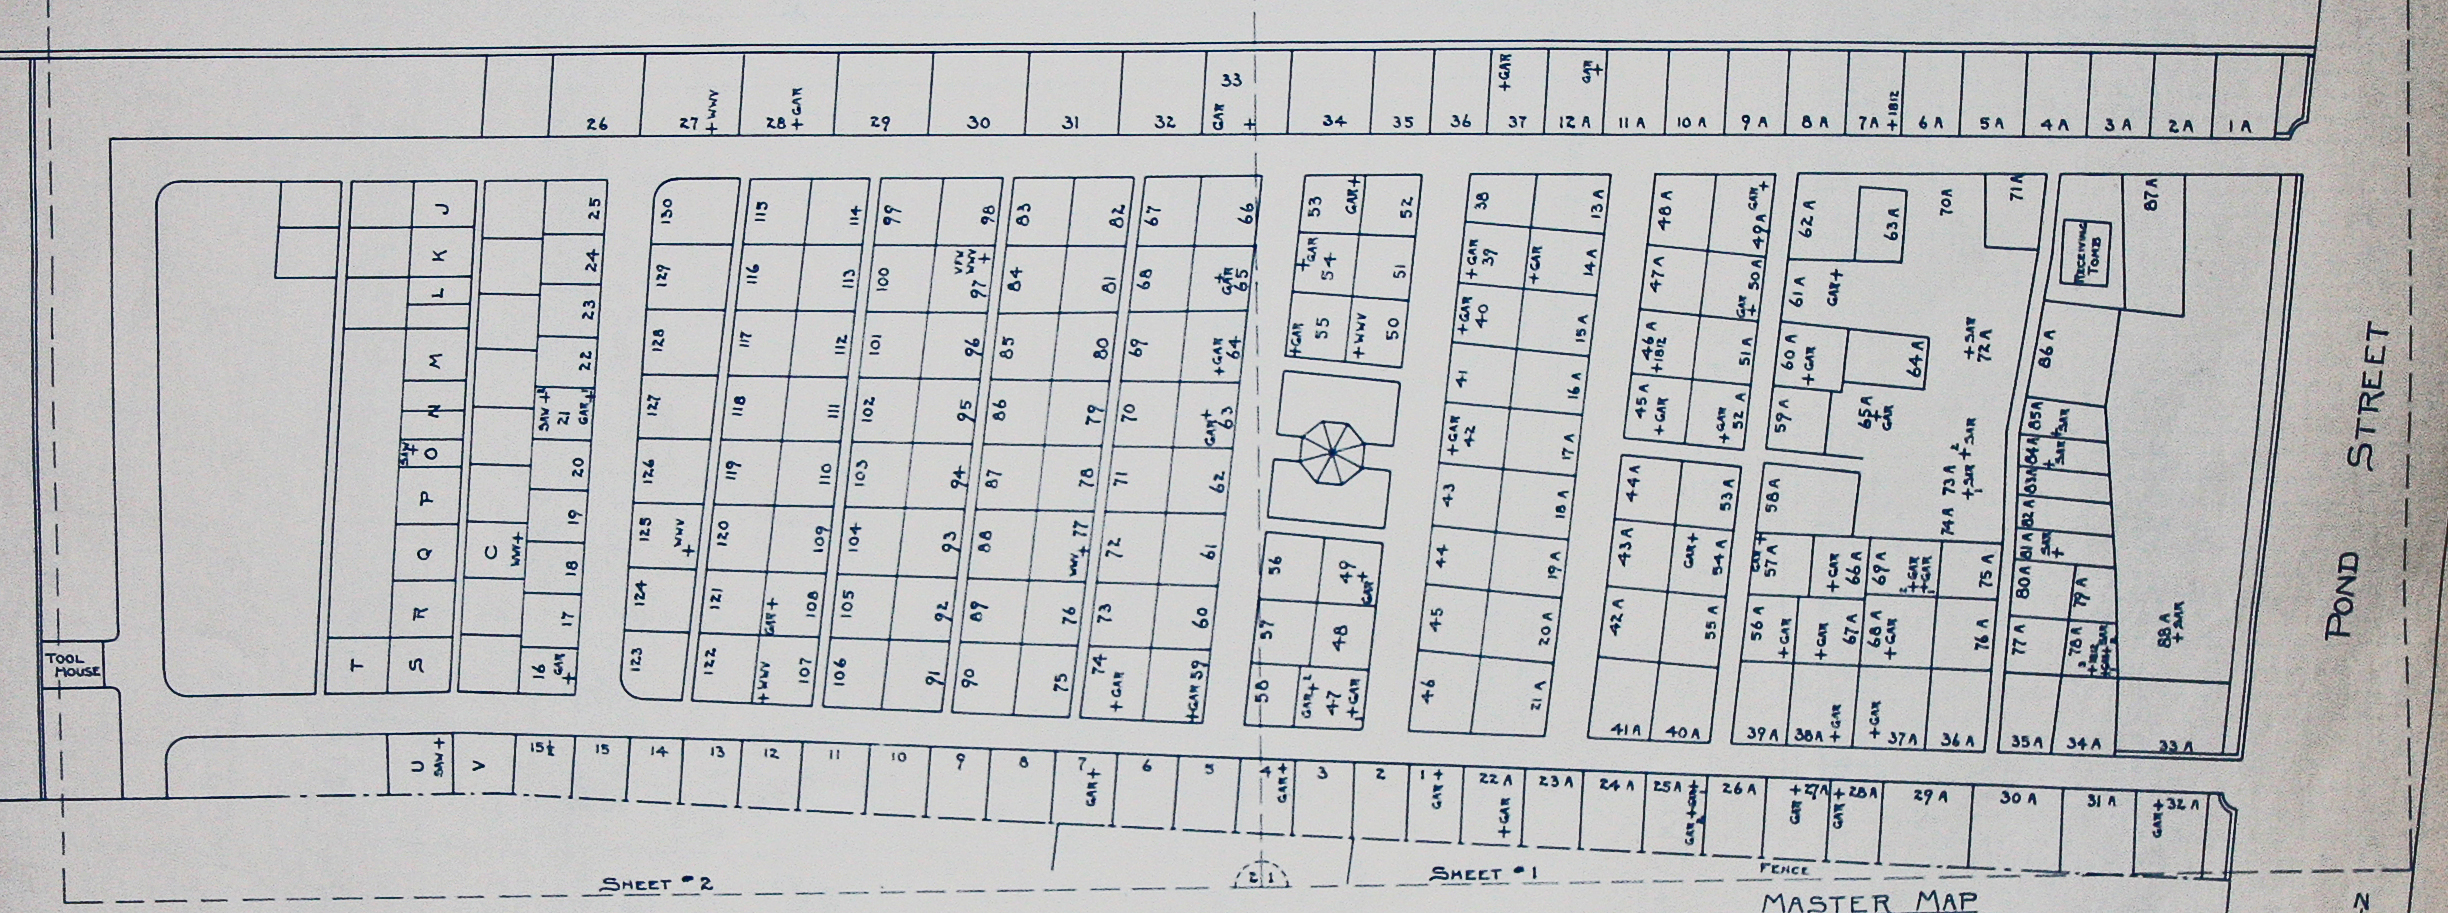 Lakeview Cemetery master map